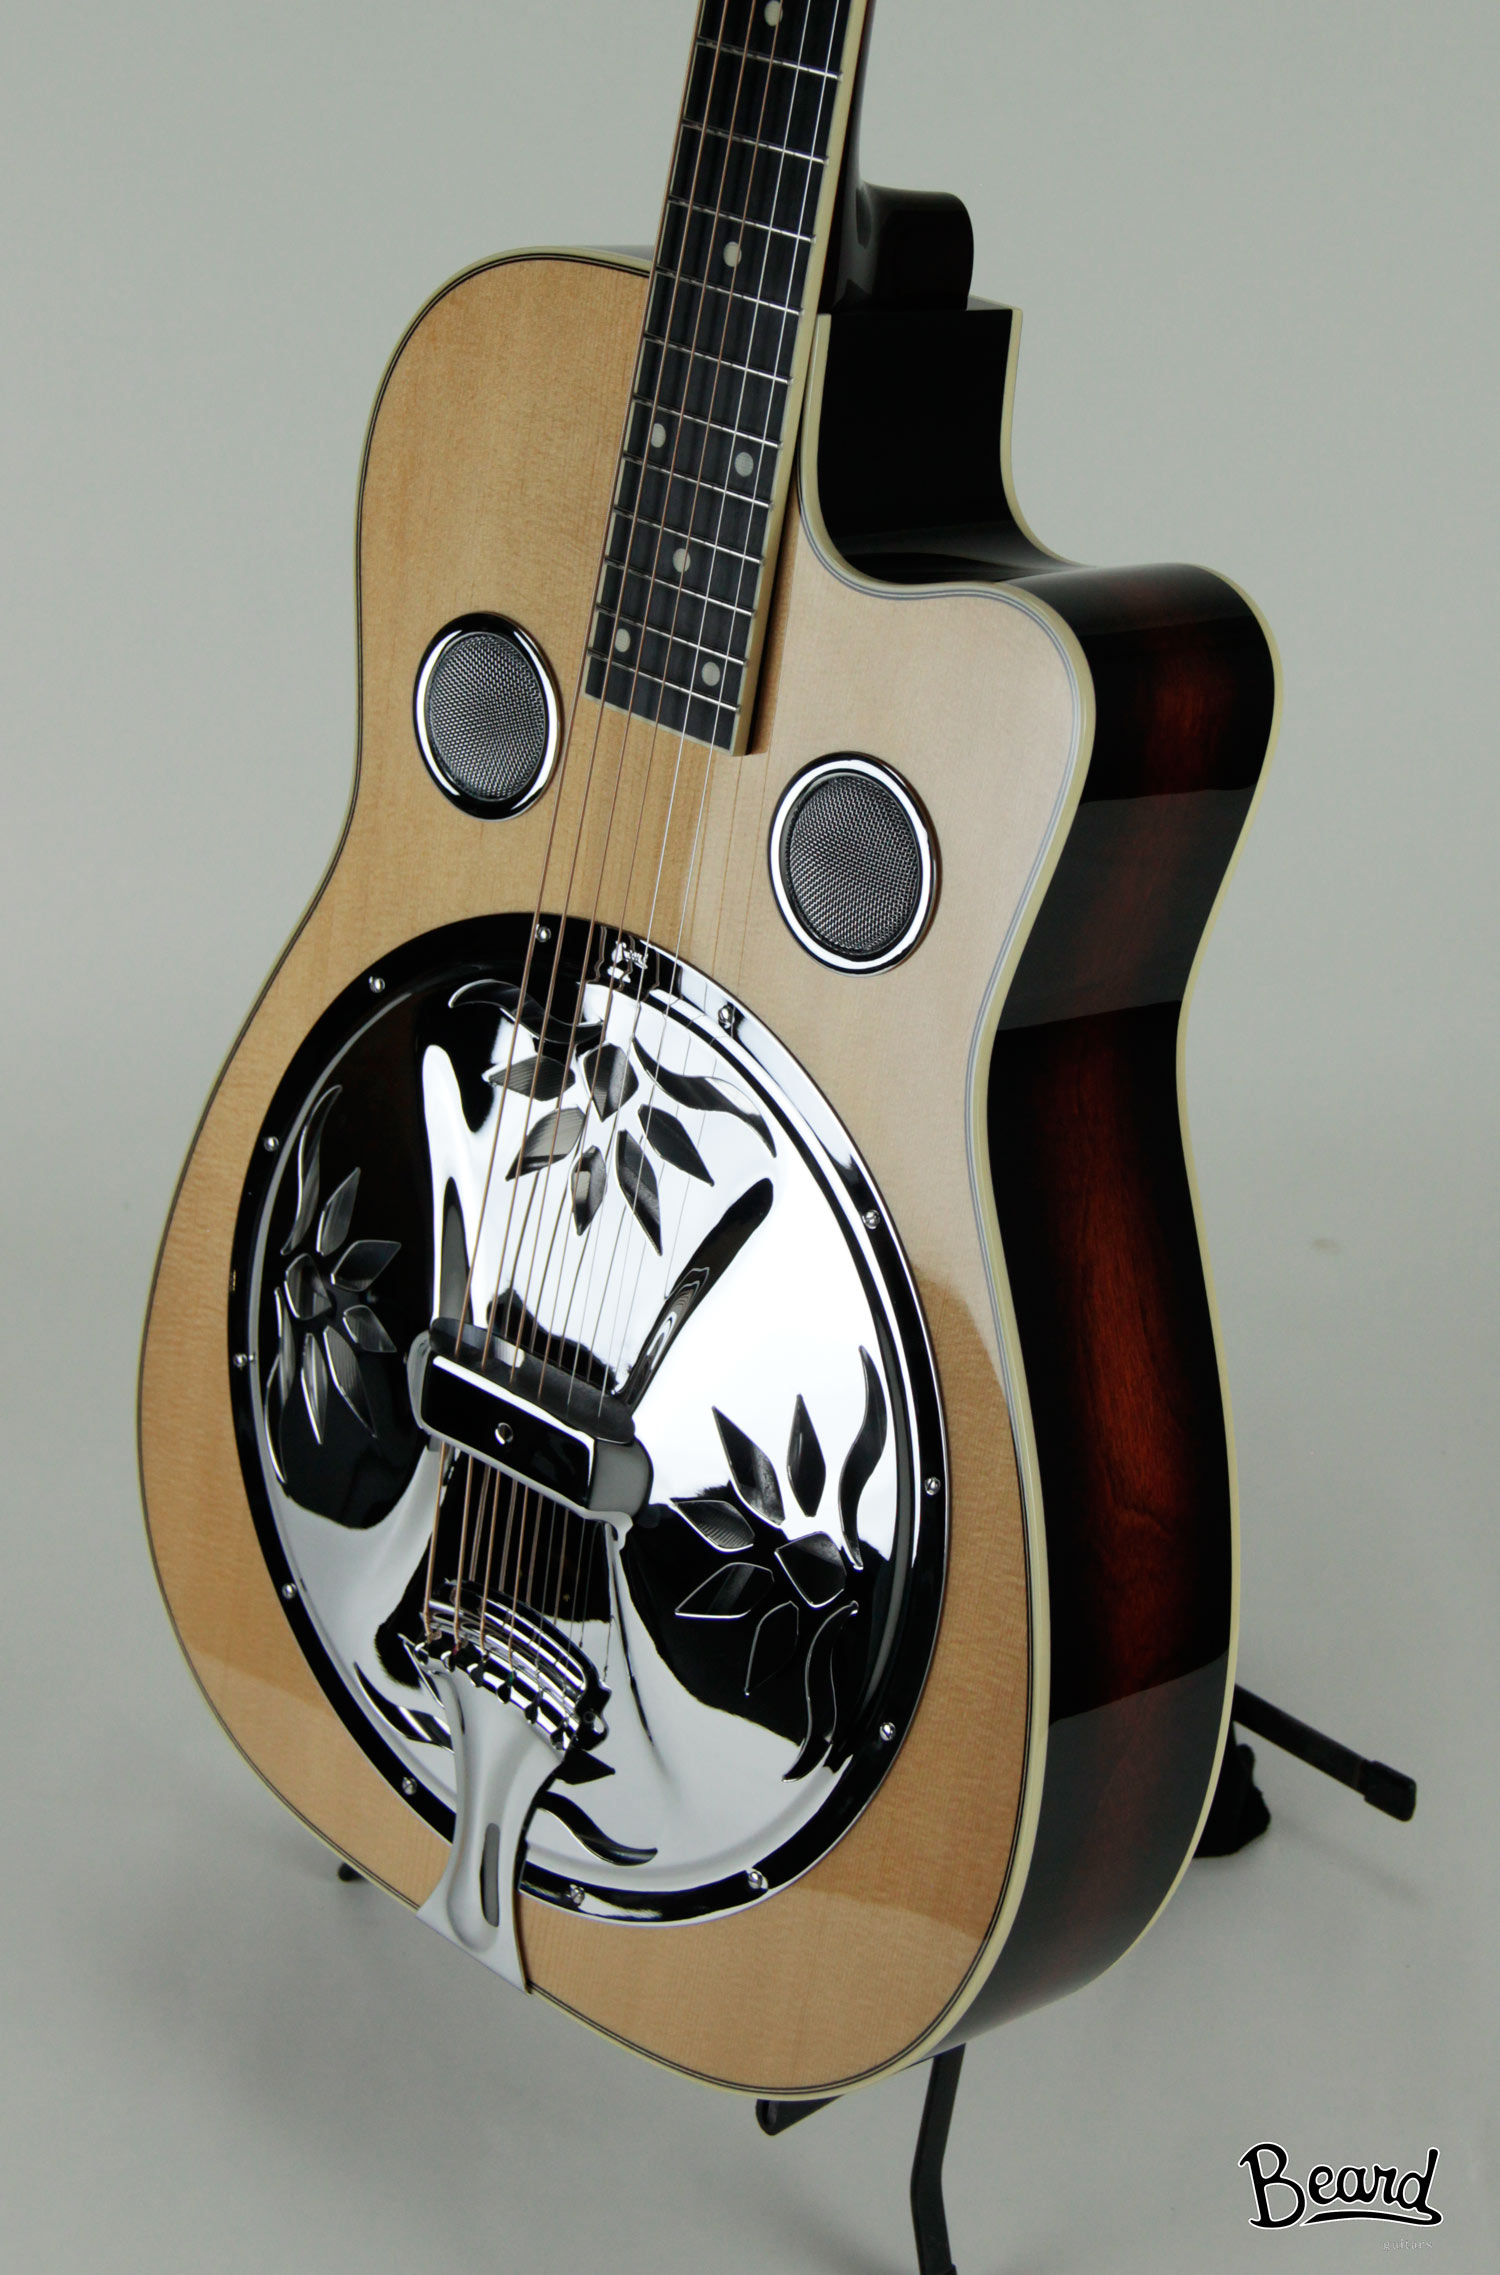 E-Model-Custom-CTWY-Spruce-Birch-Burst-SF.jpg